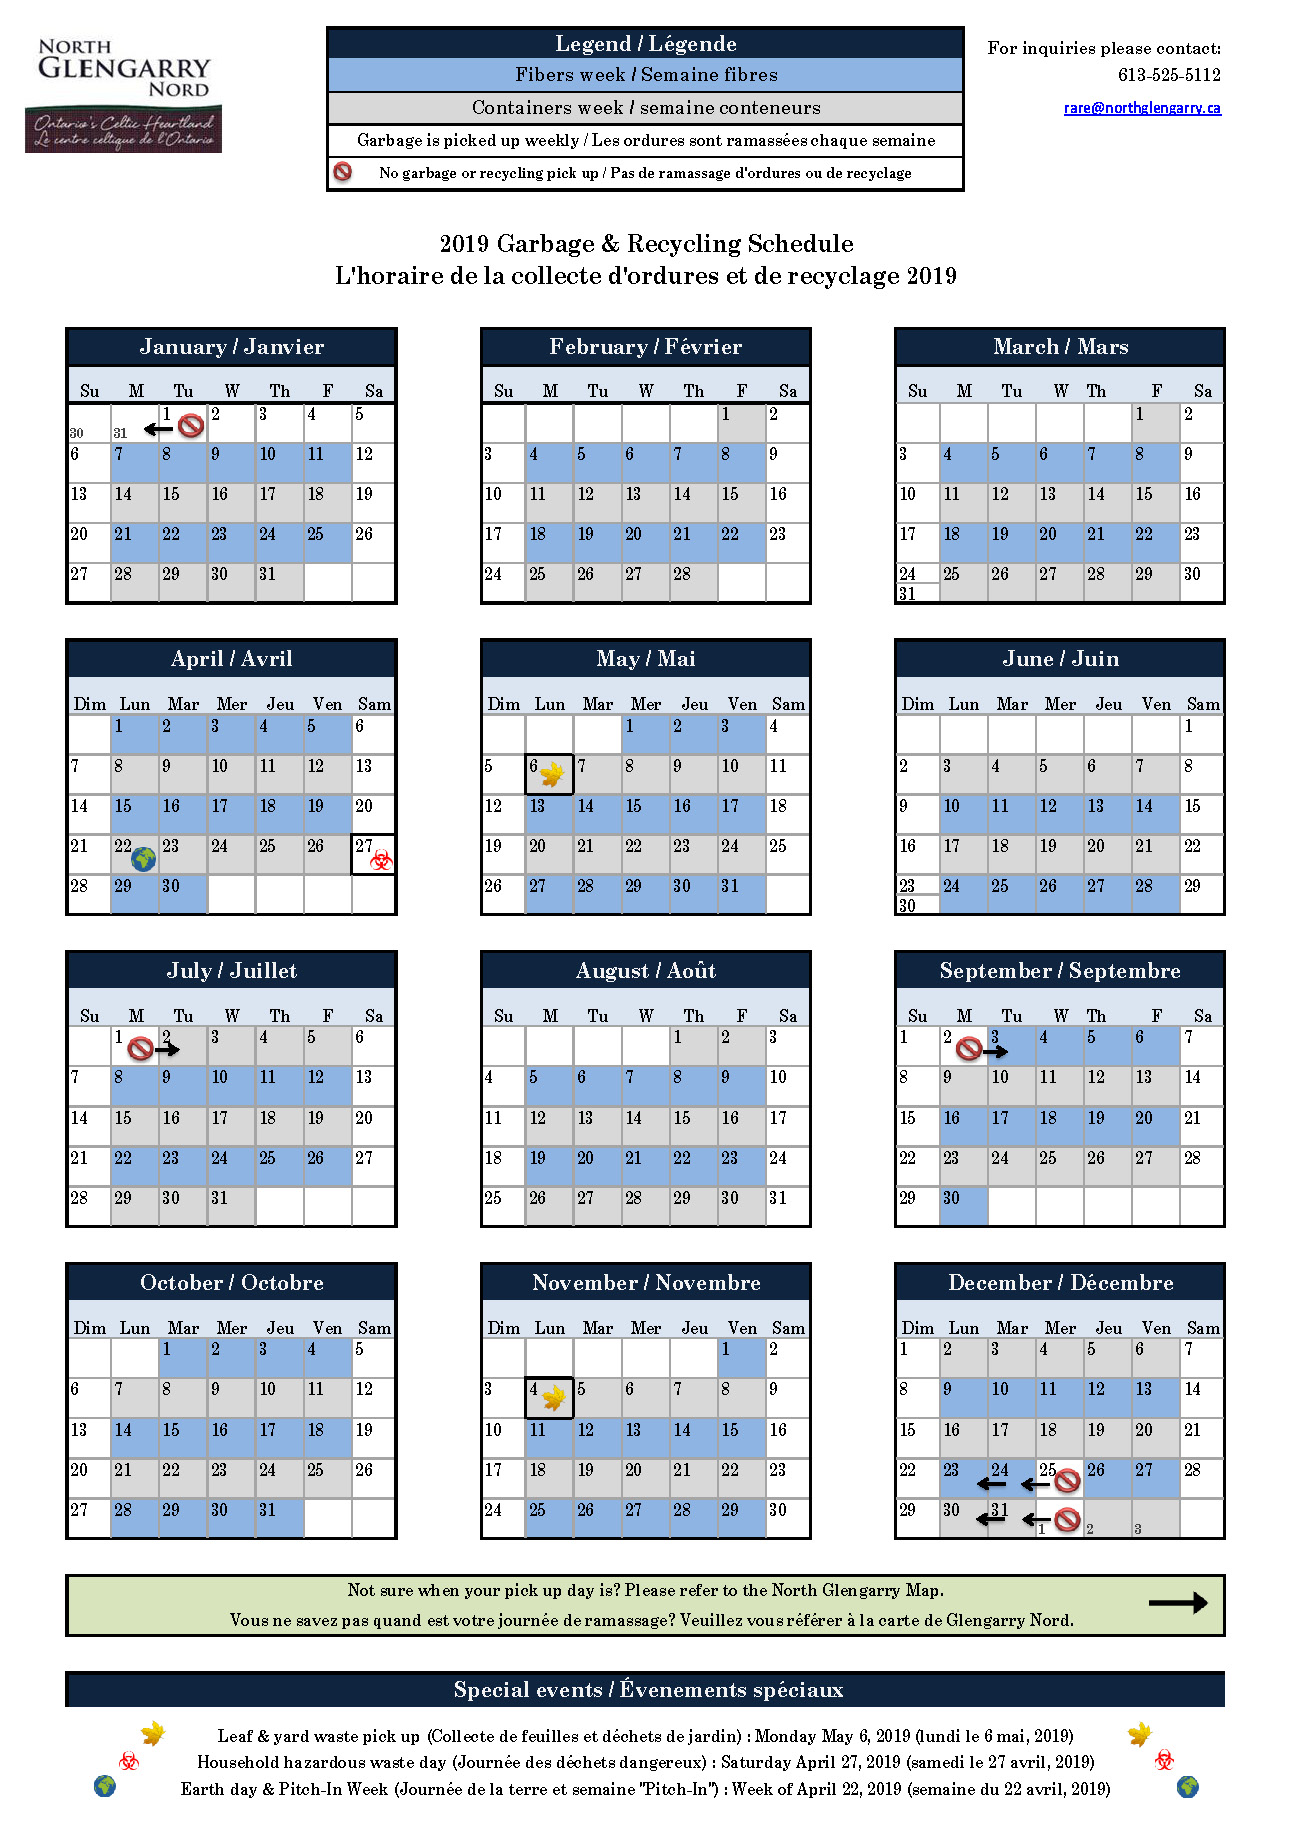 2019 Schedule for RARE pick up